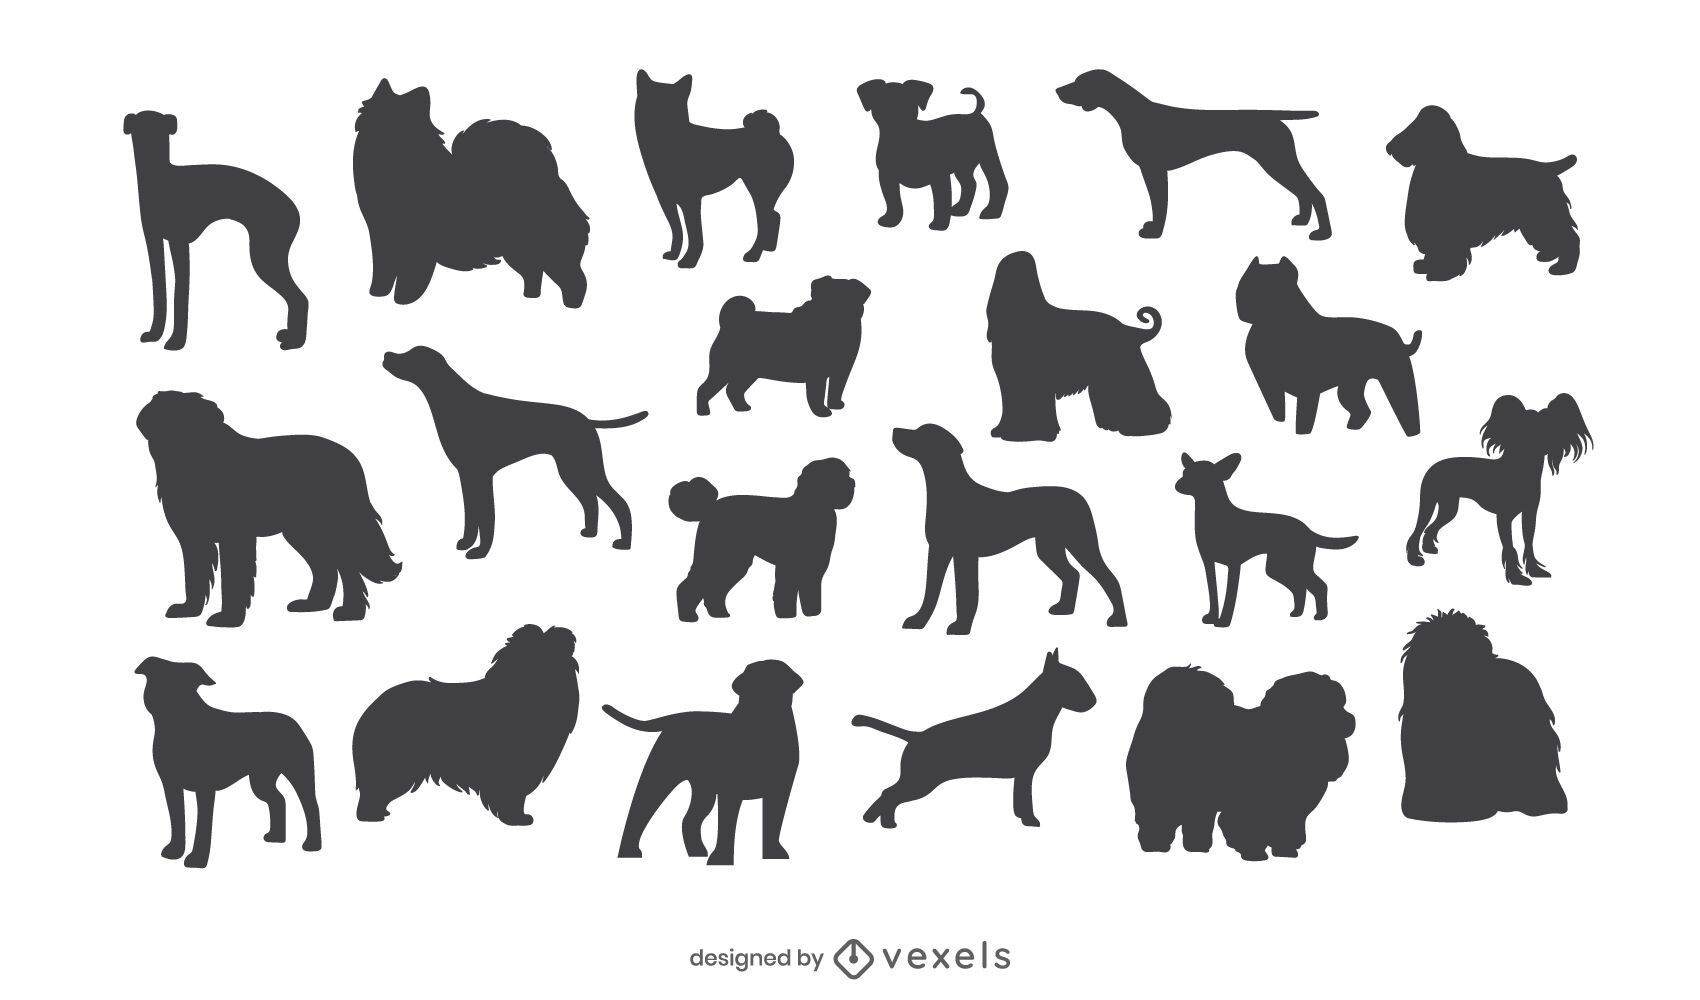 Dog breed silhouette set